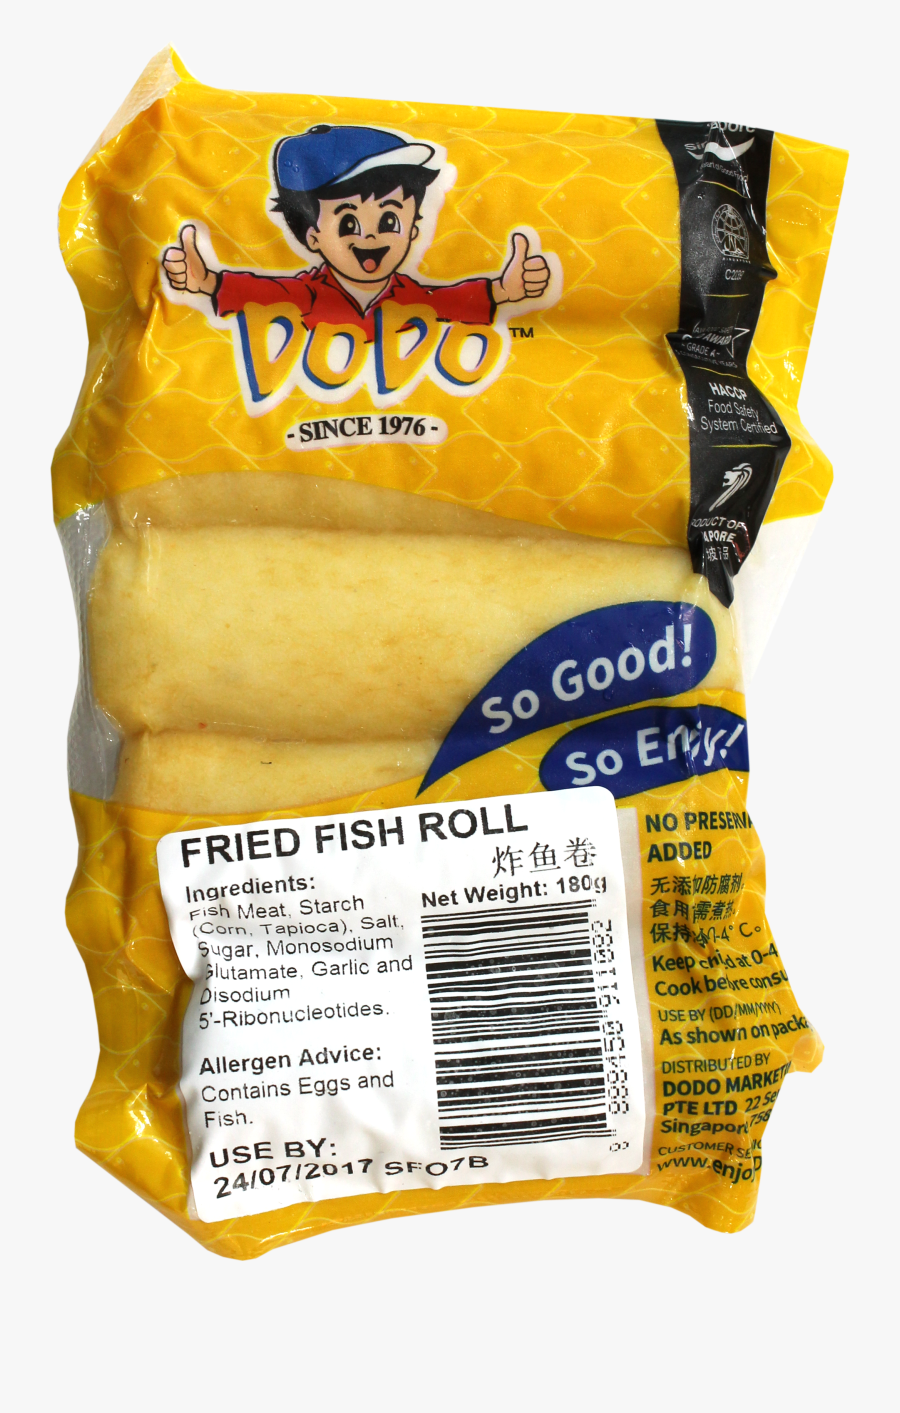 Fried Fish Roll - Dodo Fried Fish Roll, Transparent Clipart